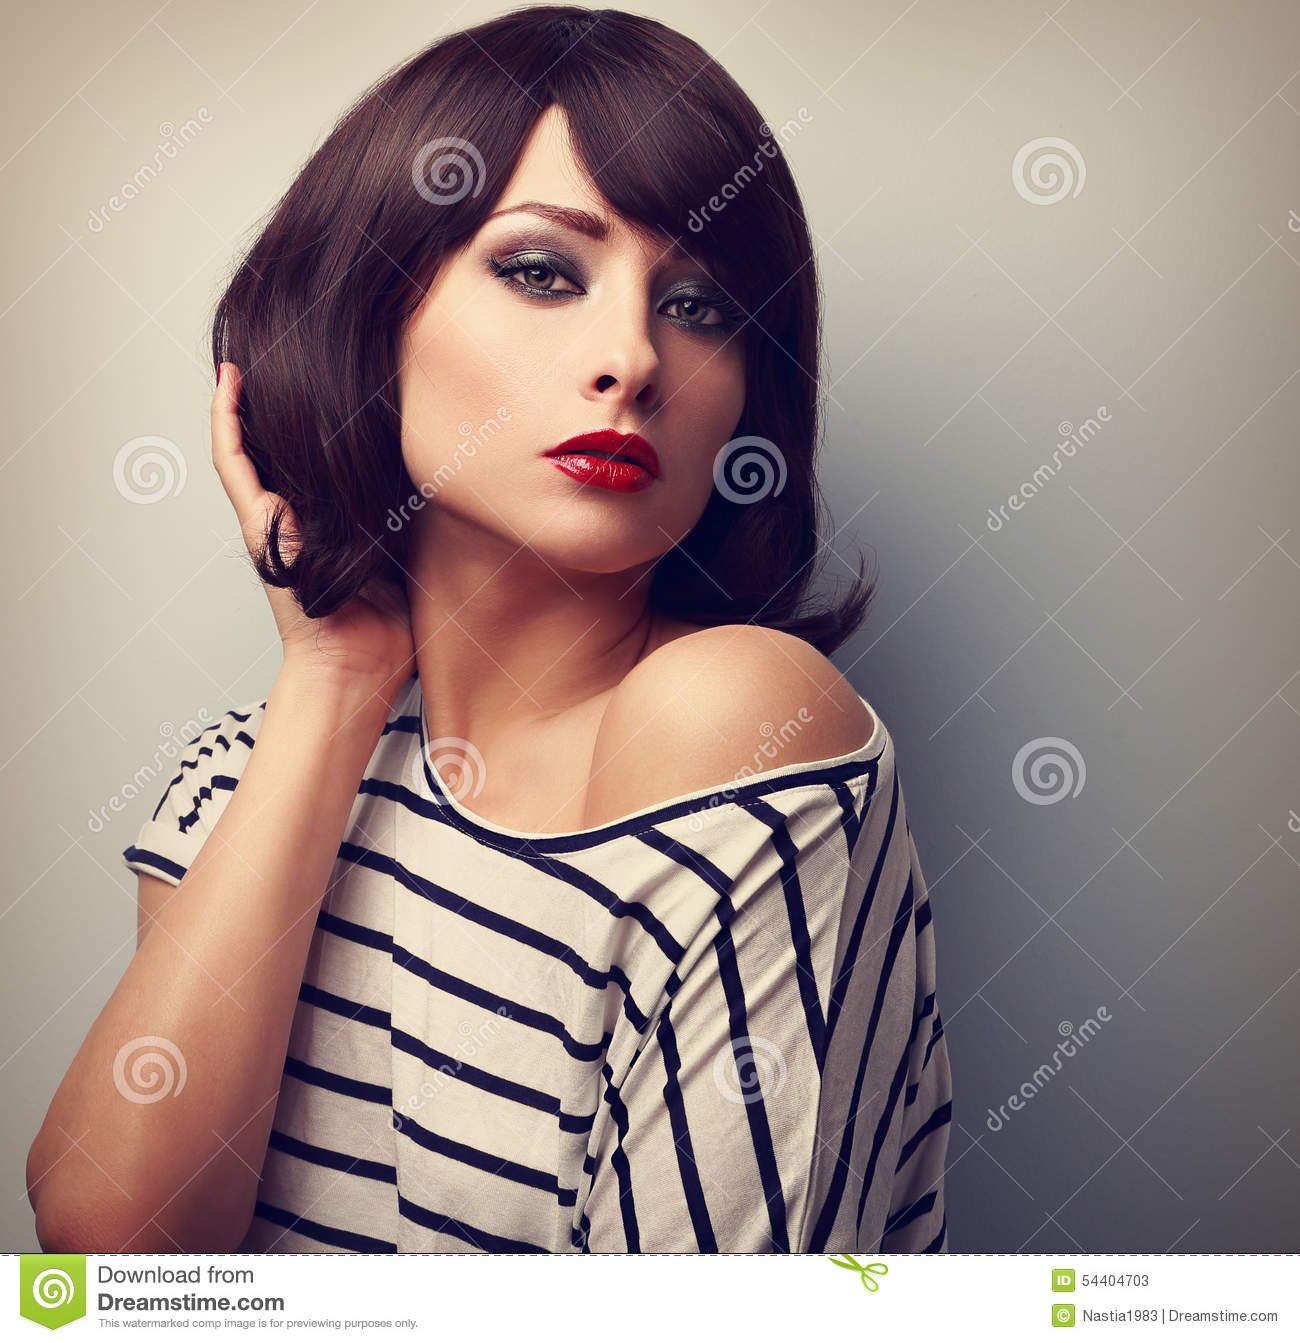 Beautiful Female Model With Short Hair Style In Casual